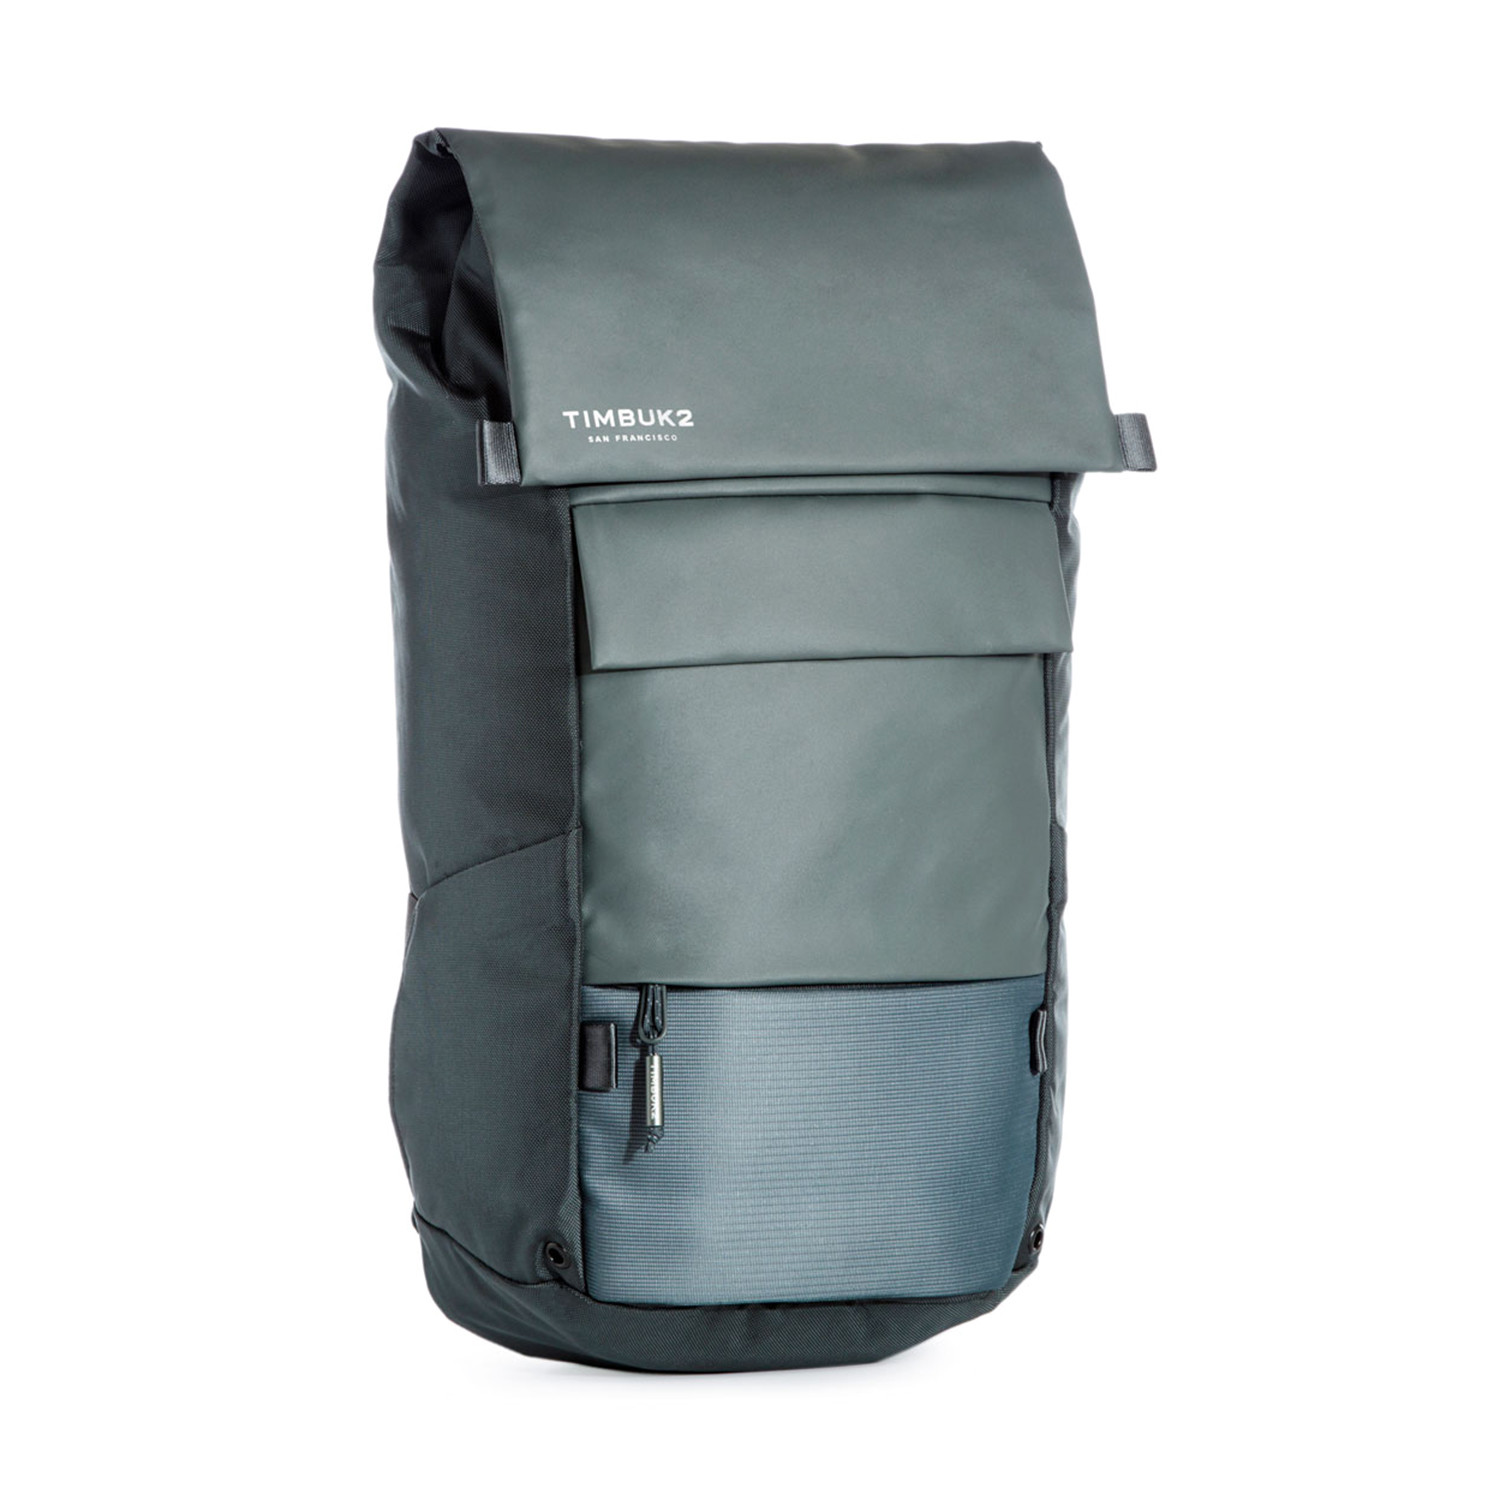 2ffb41fc295 Francisco Timbuk2 From San Touch Bags of Modern I7gyvYbf6